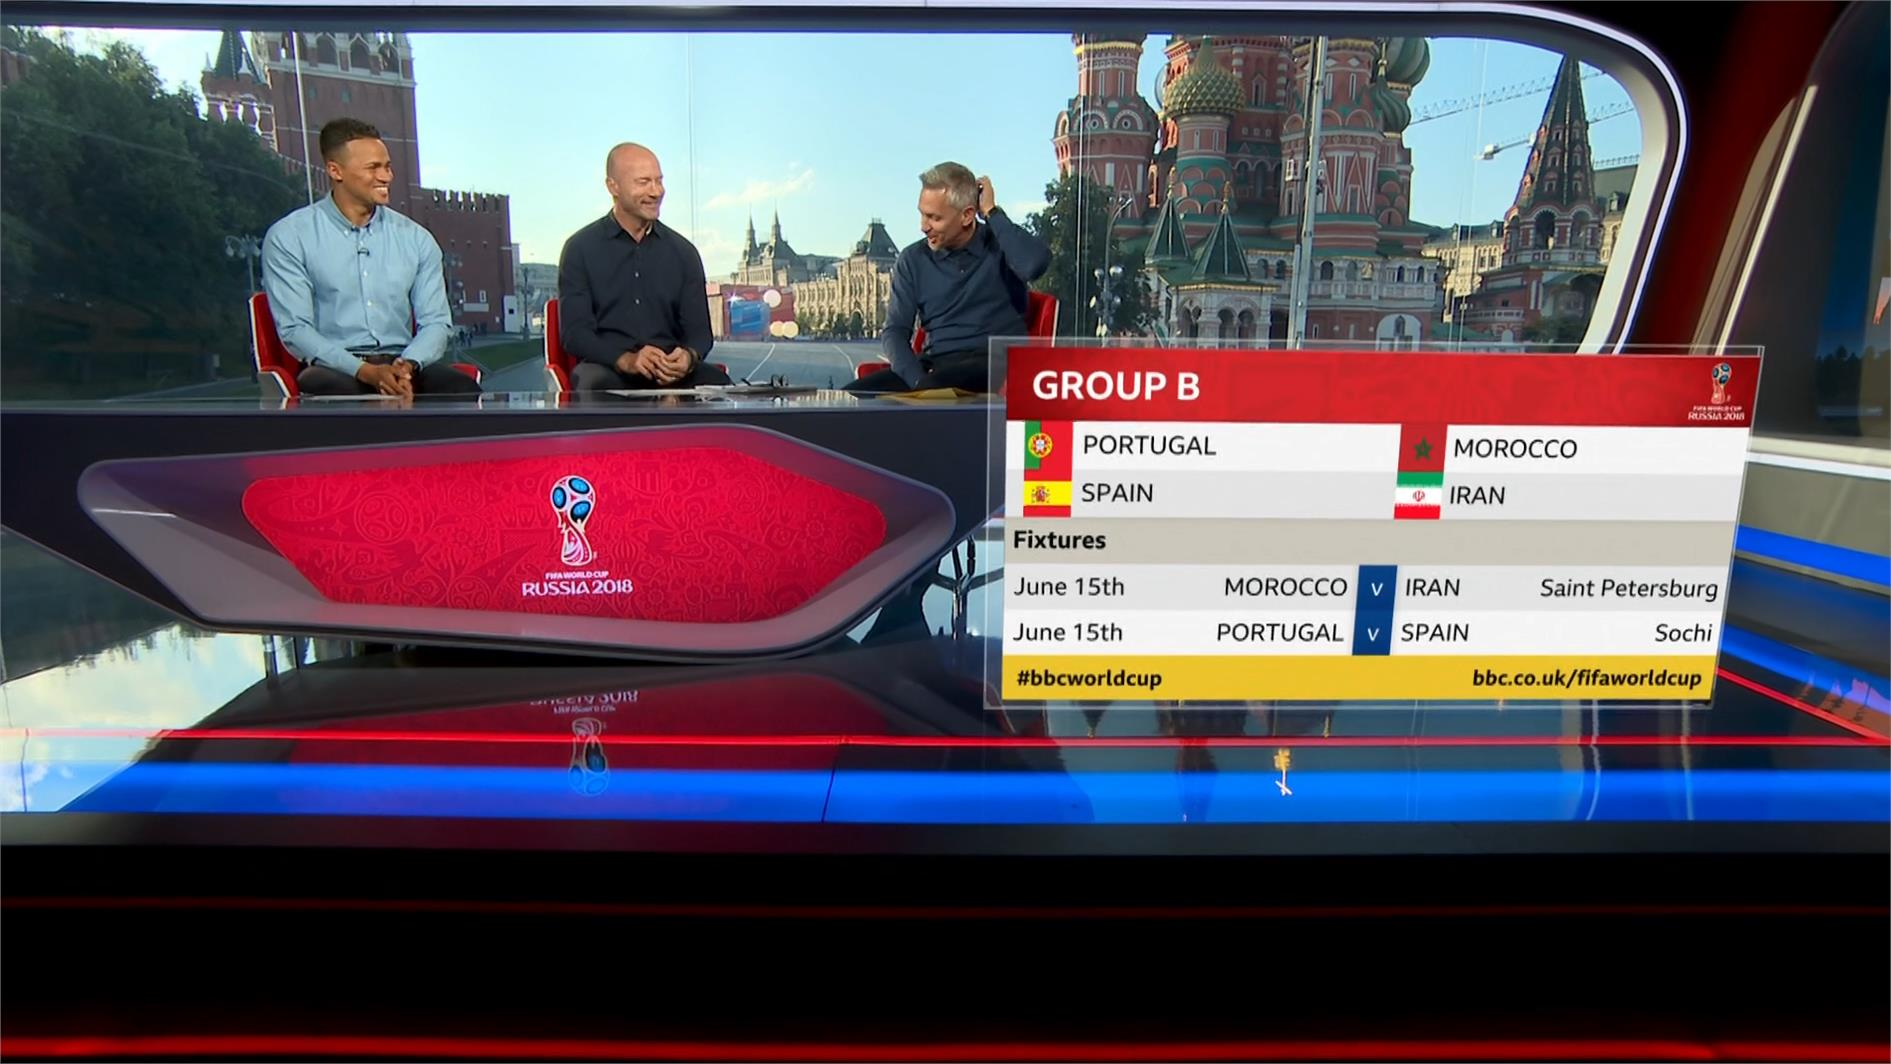 Portugal v Spain – World Cup 2018 – Live TV Coverage on BBC One